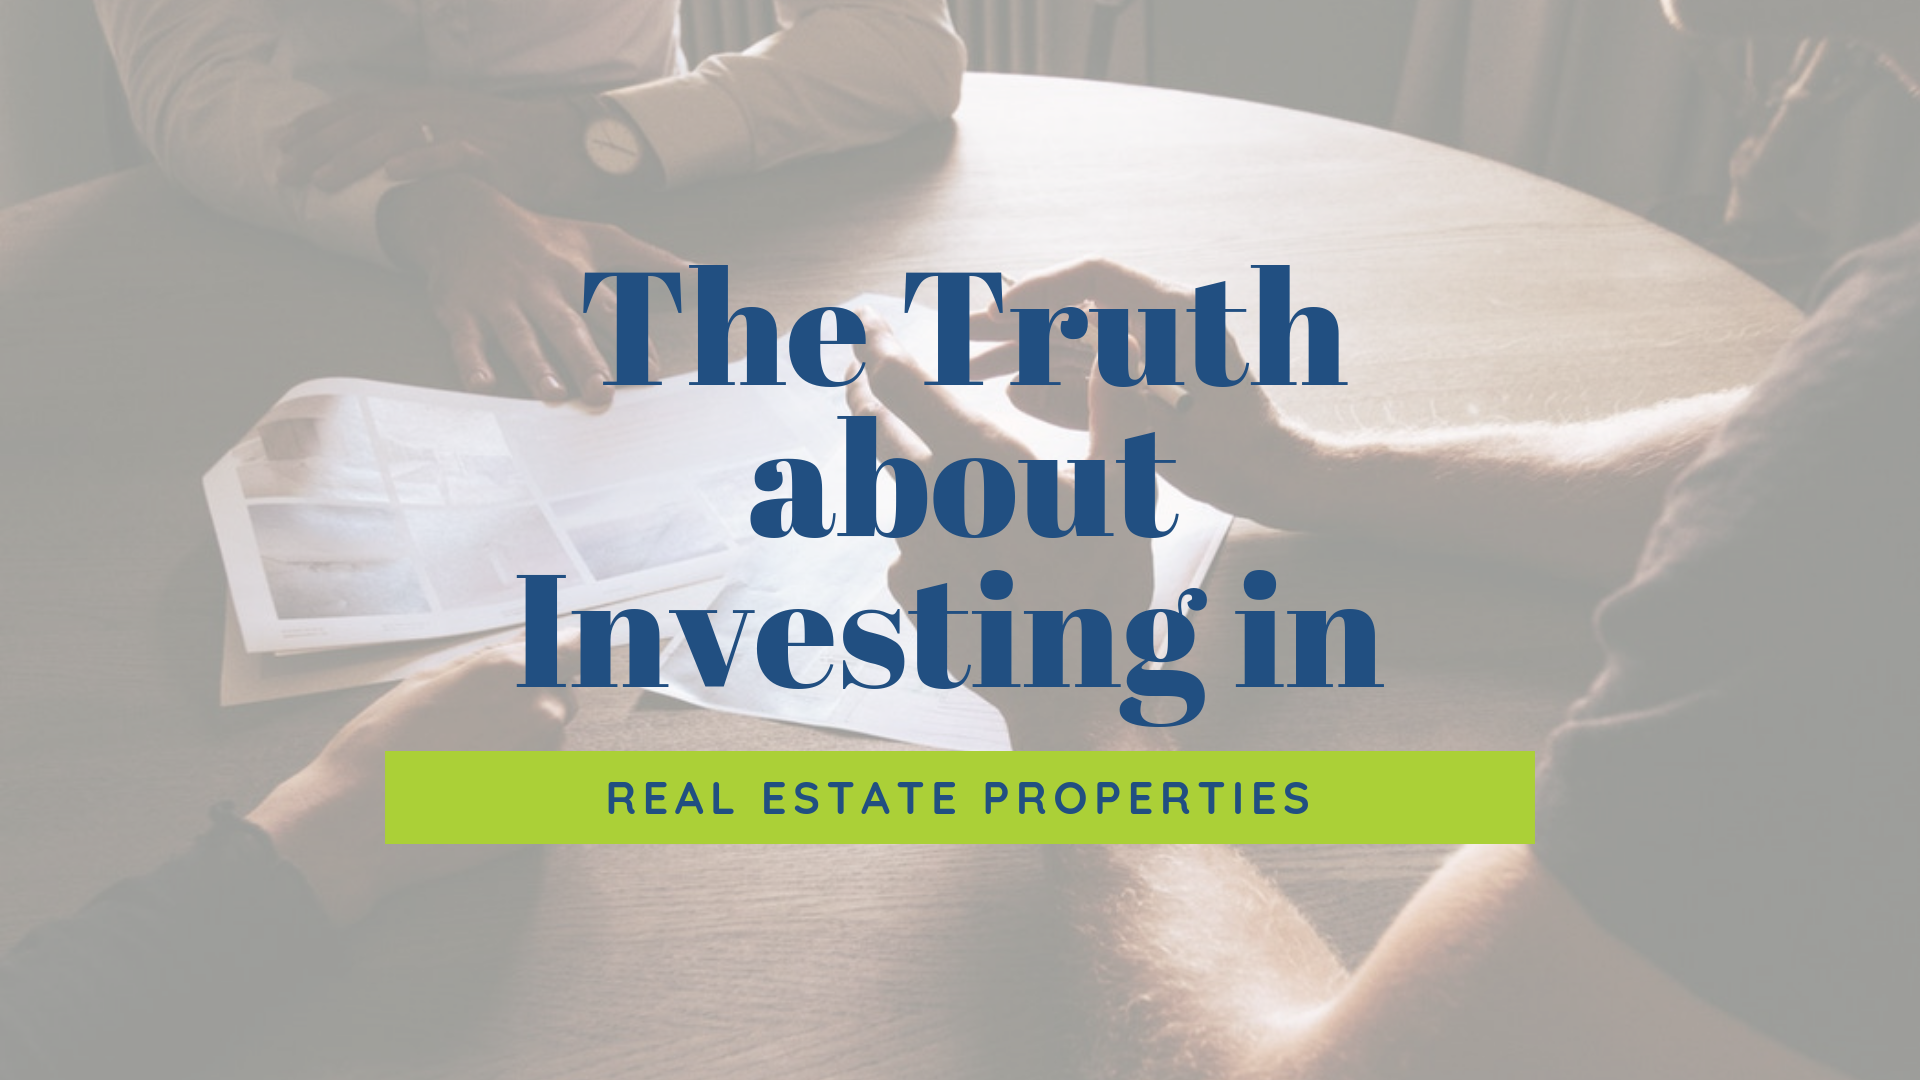 What is The Truth about Investing in Lancaster Real Estate Properties?